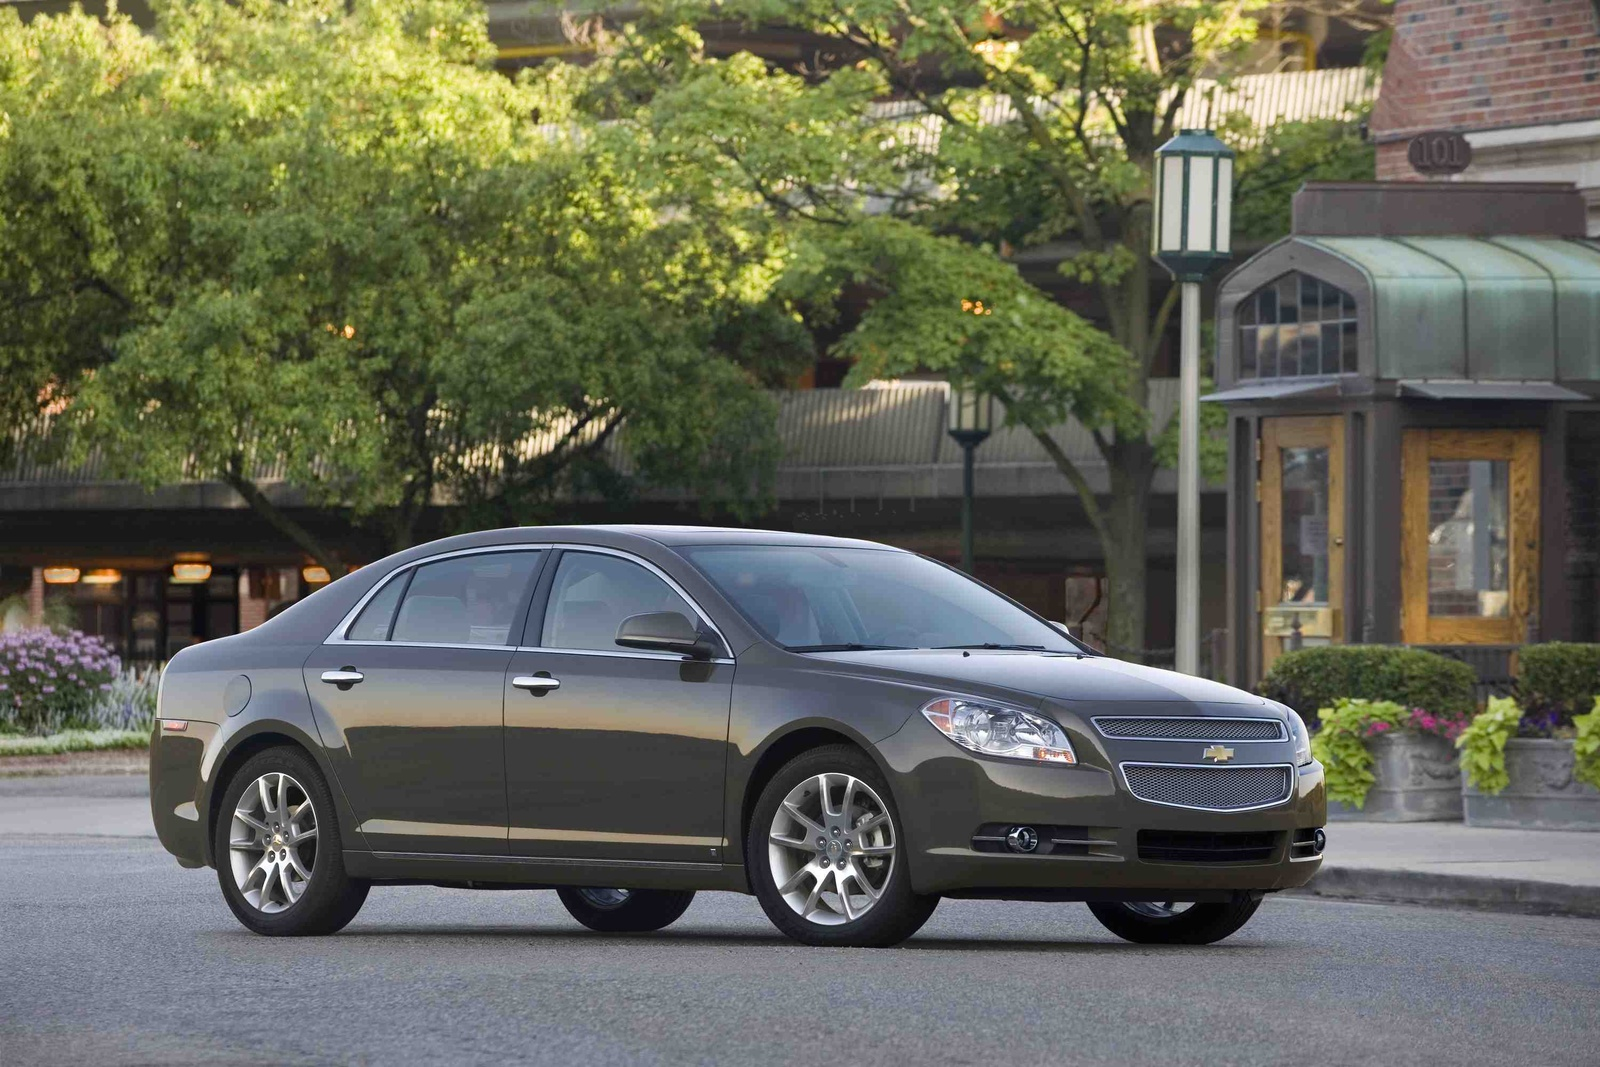 2010 Chevrolet Malibu - Information and photos - MOMENTcar